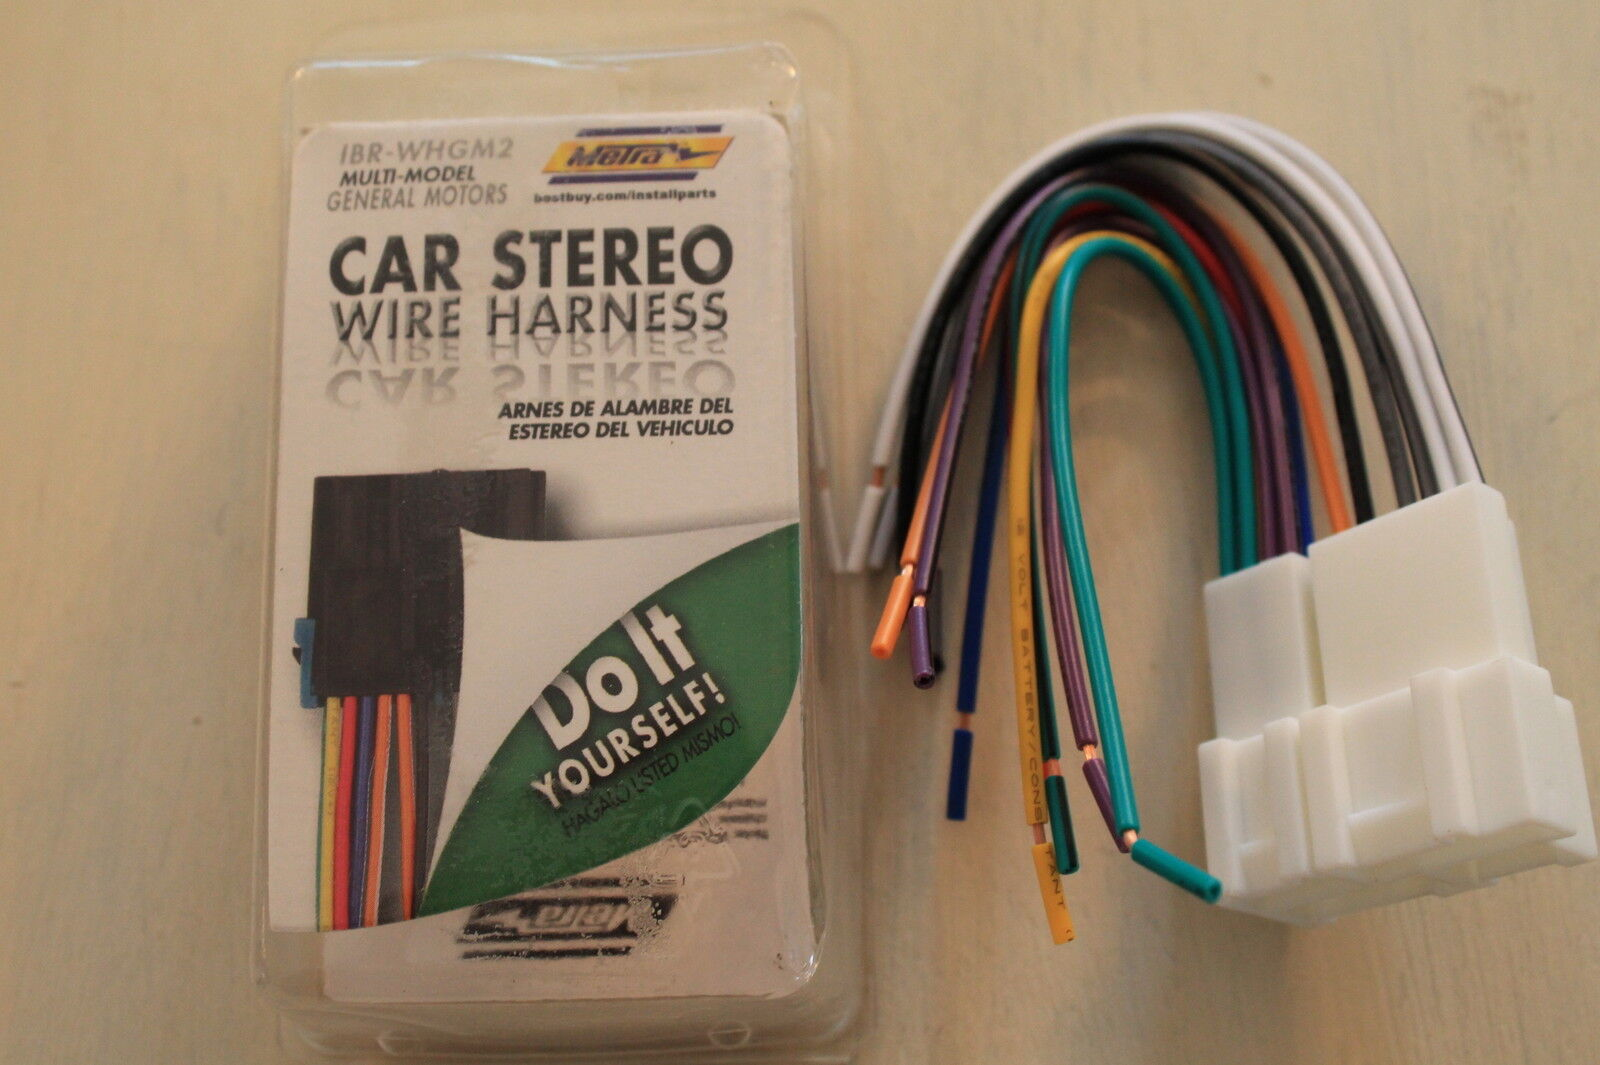 hight resolution of metra ibr whgm2 wiring harness for most 1987 2005 gm vehicles new n1 for sale online